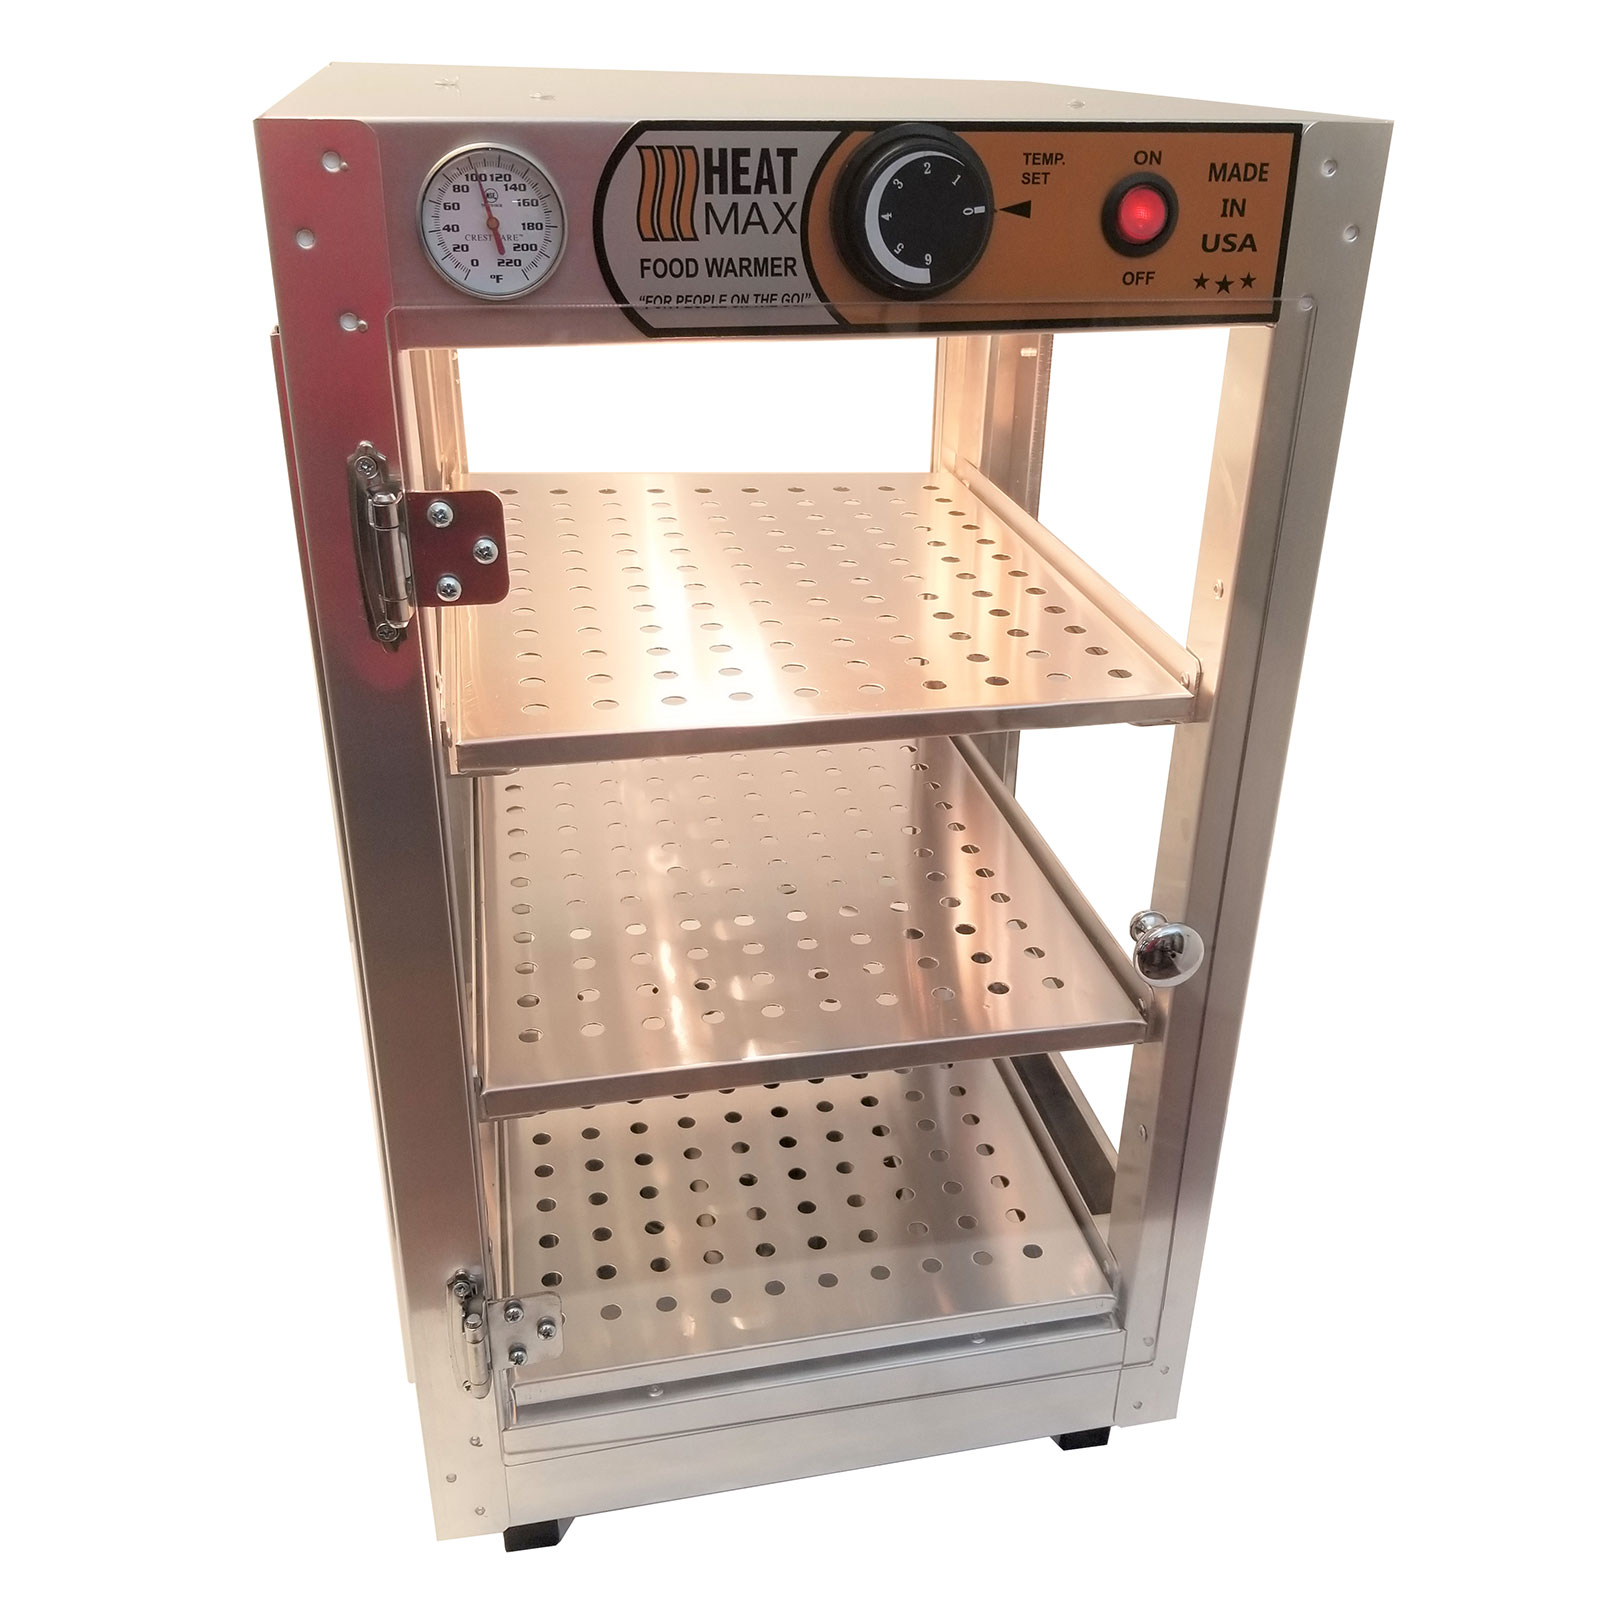 Commercial 14 x 14 x 24 Countertop Food Pizza Pastry Warmer Display Case HeatMax